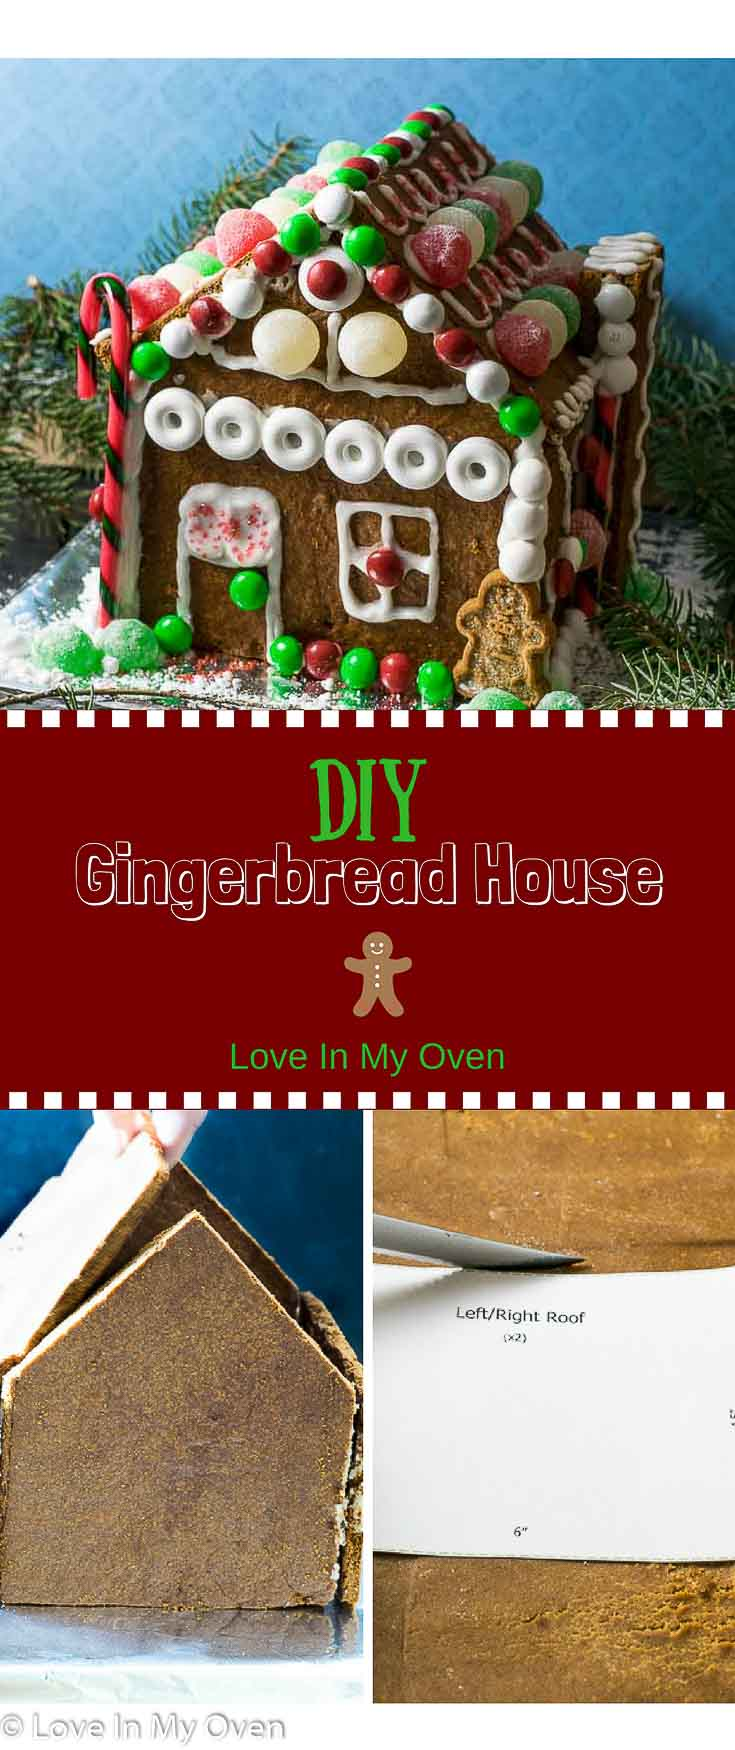 DIY, Christmas, holiday baking, gingerbread house, crafts, crafts with kids, easy craft, holiday crafts, gingerbread, dessert, display, decorating